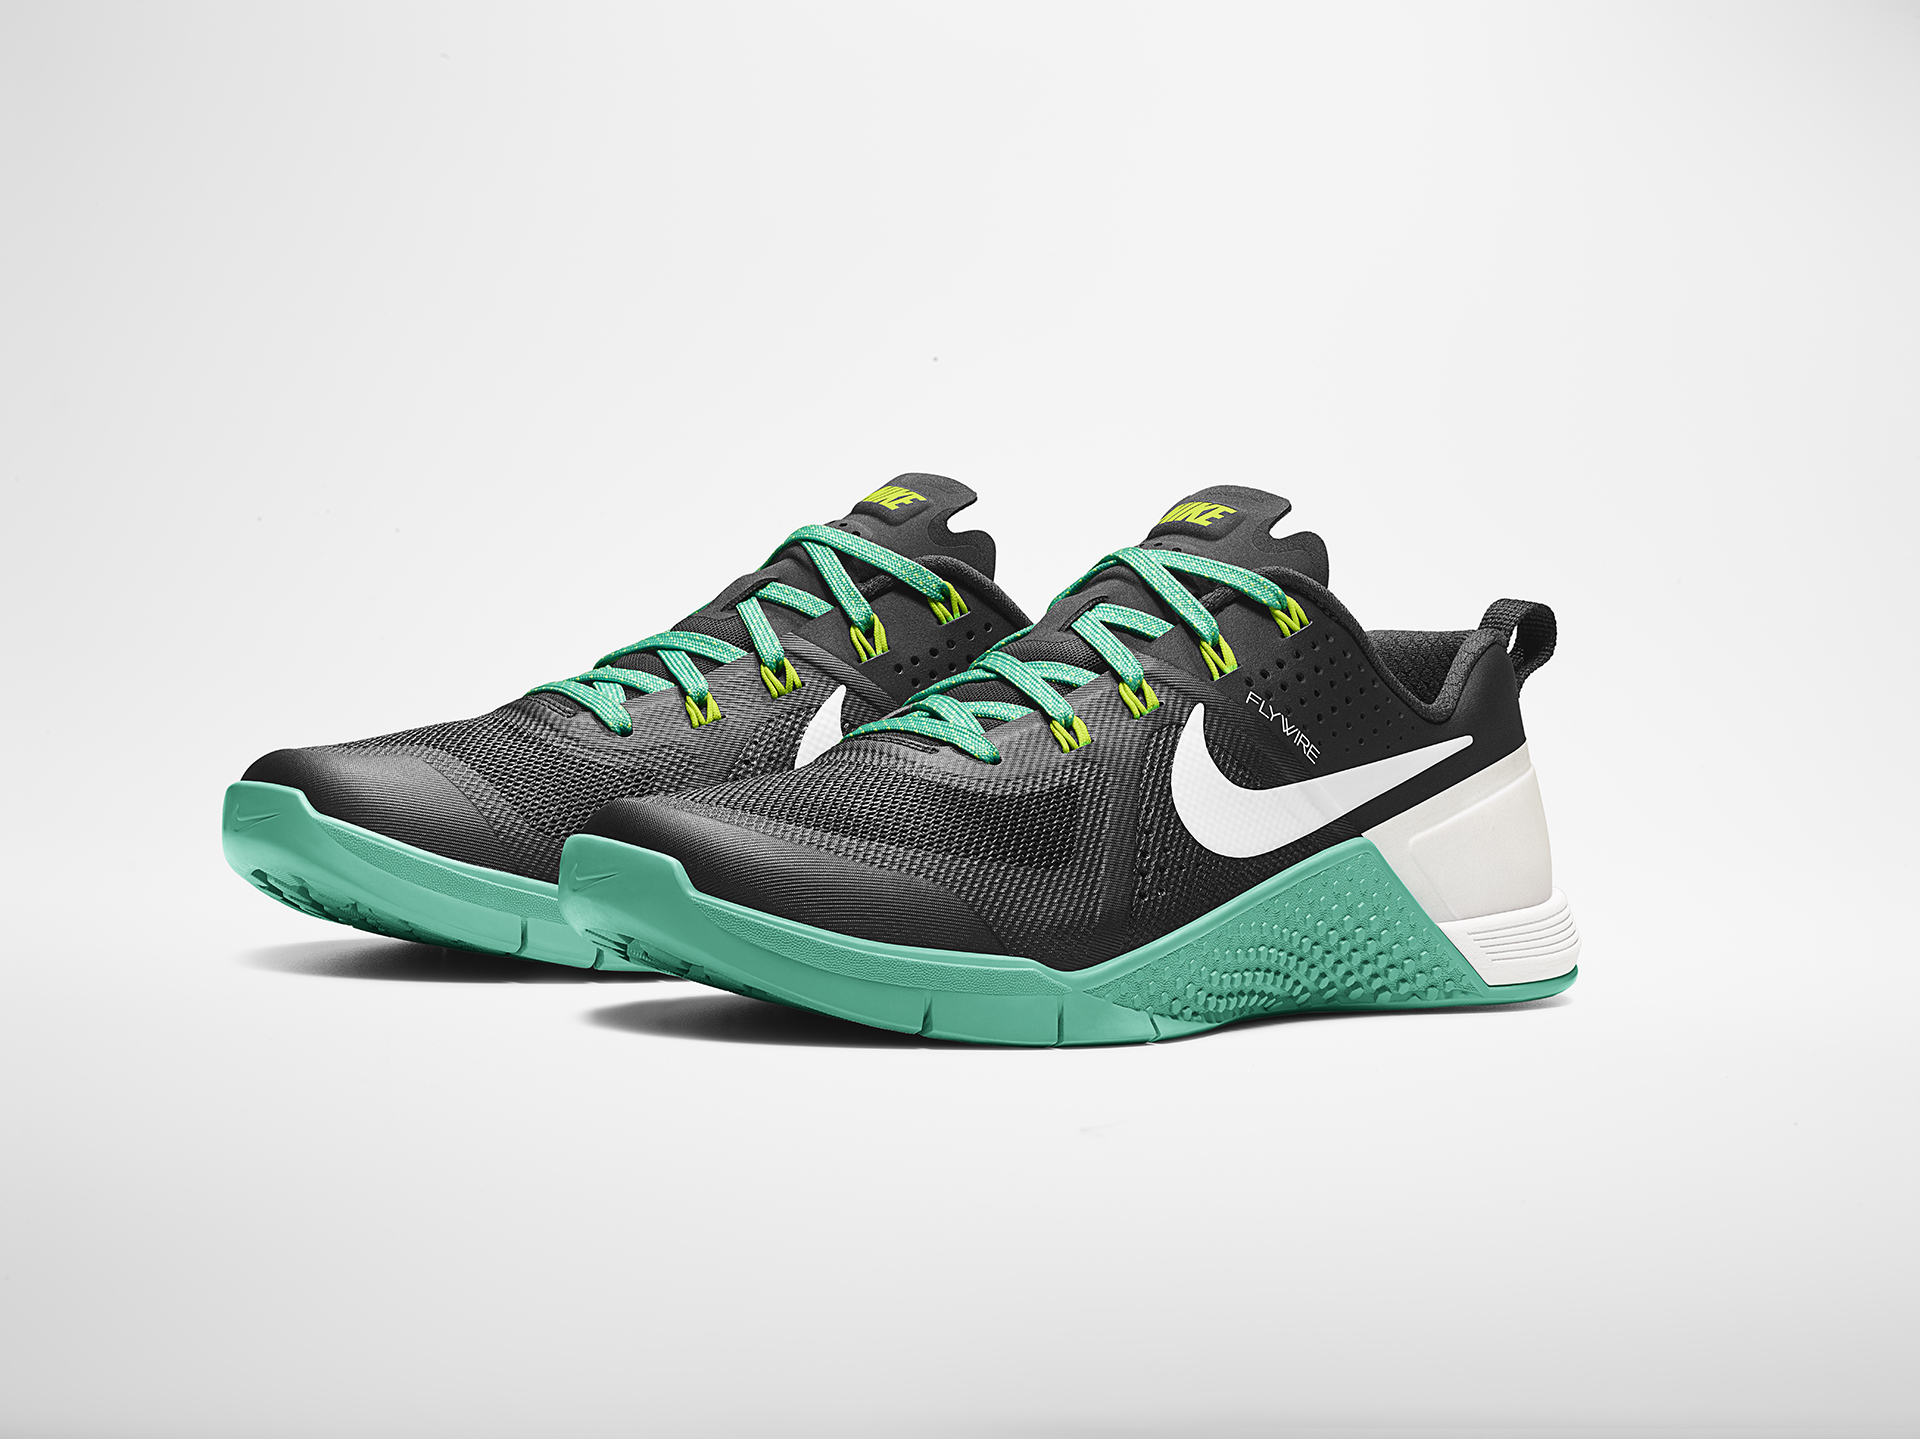 nike shoes green boys landscapes by design 844534